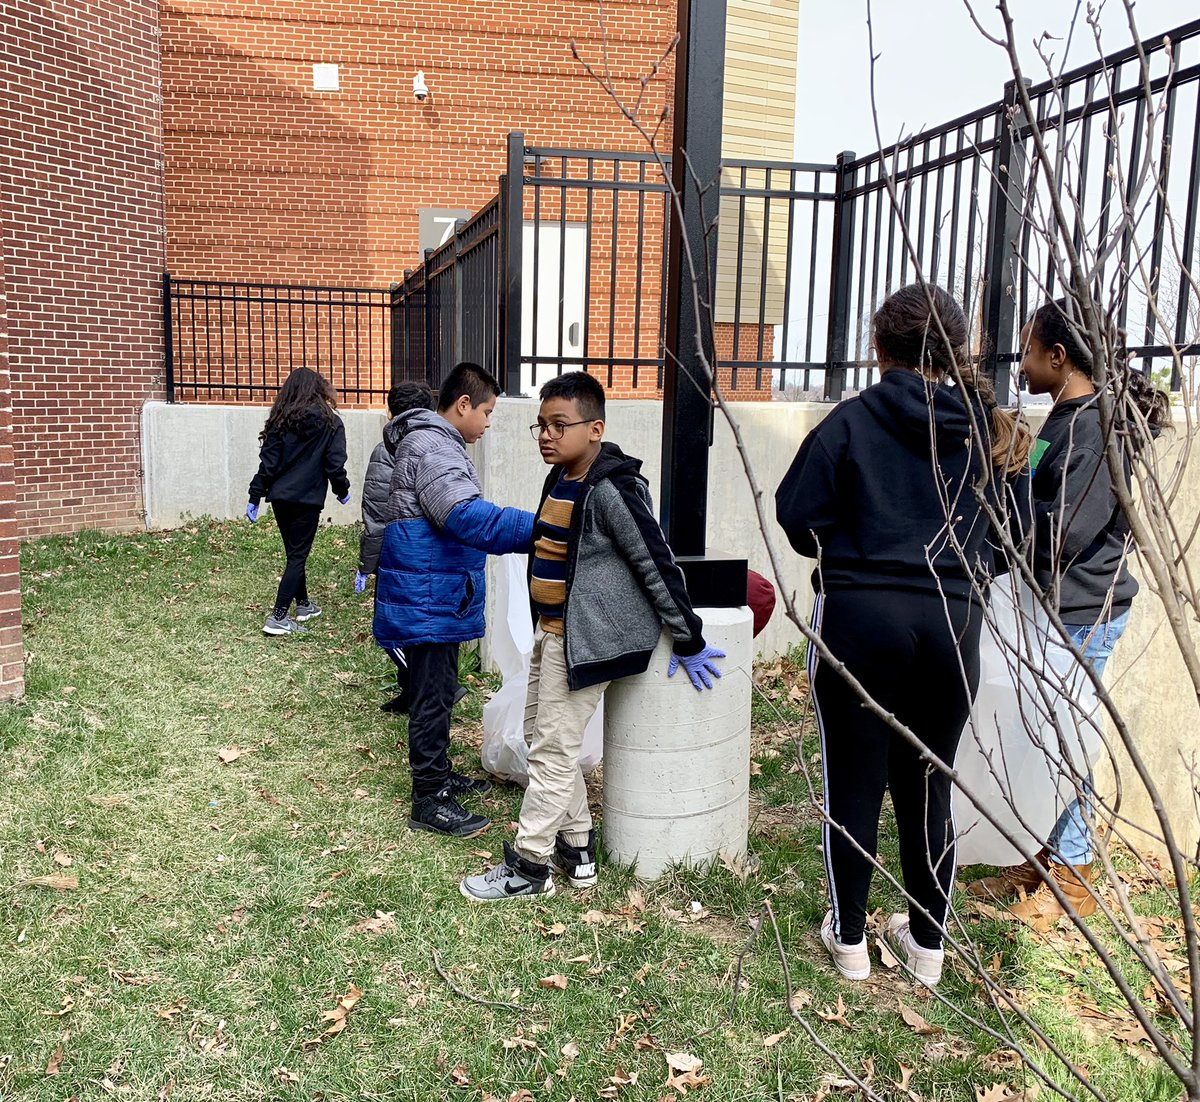 Today <a target='_blank' href='http://twitter.com/APS_ProjectYES'>@APS_ProjectYES</a> club was spotted outside picking up the trash in our school grounds w/ <a target='_blank' href='http://twitter.com/ReadingRube'>@ReadingRube</a> &amp; <a target='_blank' href='http://twitter.com/teamgorecki'>@teamgorecki</a> They were getting ready for Earth 🌎 Day &amp; celebrating the first day of spring 🌸! Please don't forget to throw out your 🗑 trash. <a target='_blank' href='http://search.twitter.com/search?q=communityservice'><a target='_blank' href='https://twitter.com/hashtag/communityservice?src=hash'>#communityservice</a></a> <a target='_blank' href='https://t.co/GBJlqwZlmB'>https://t.co/GBJlqwZlmB</a>